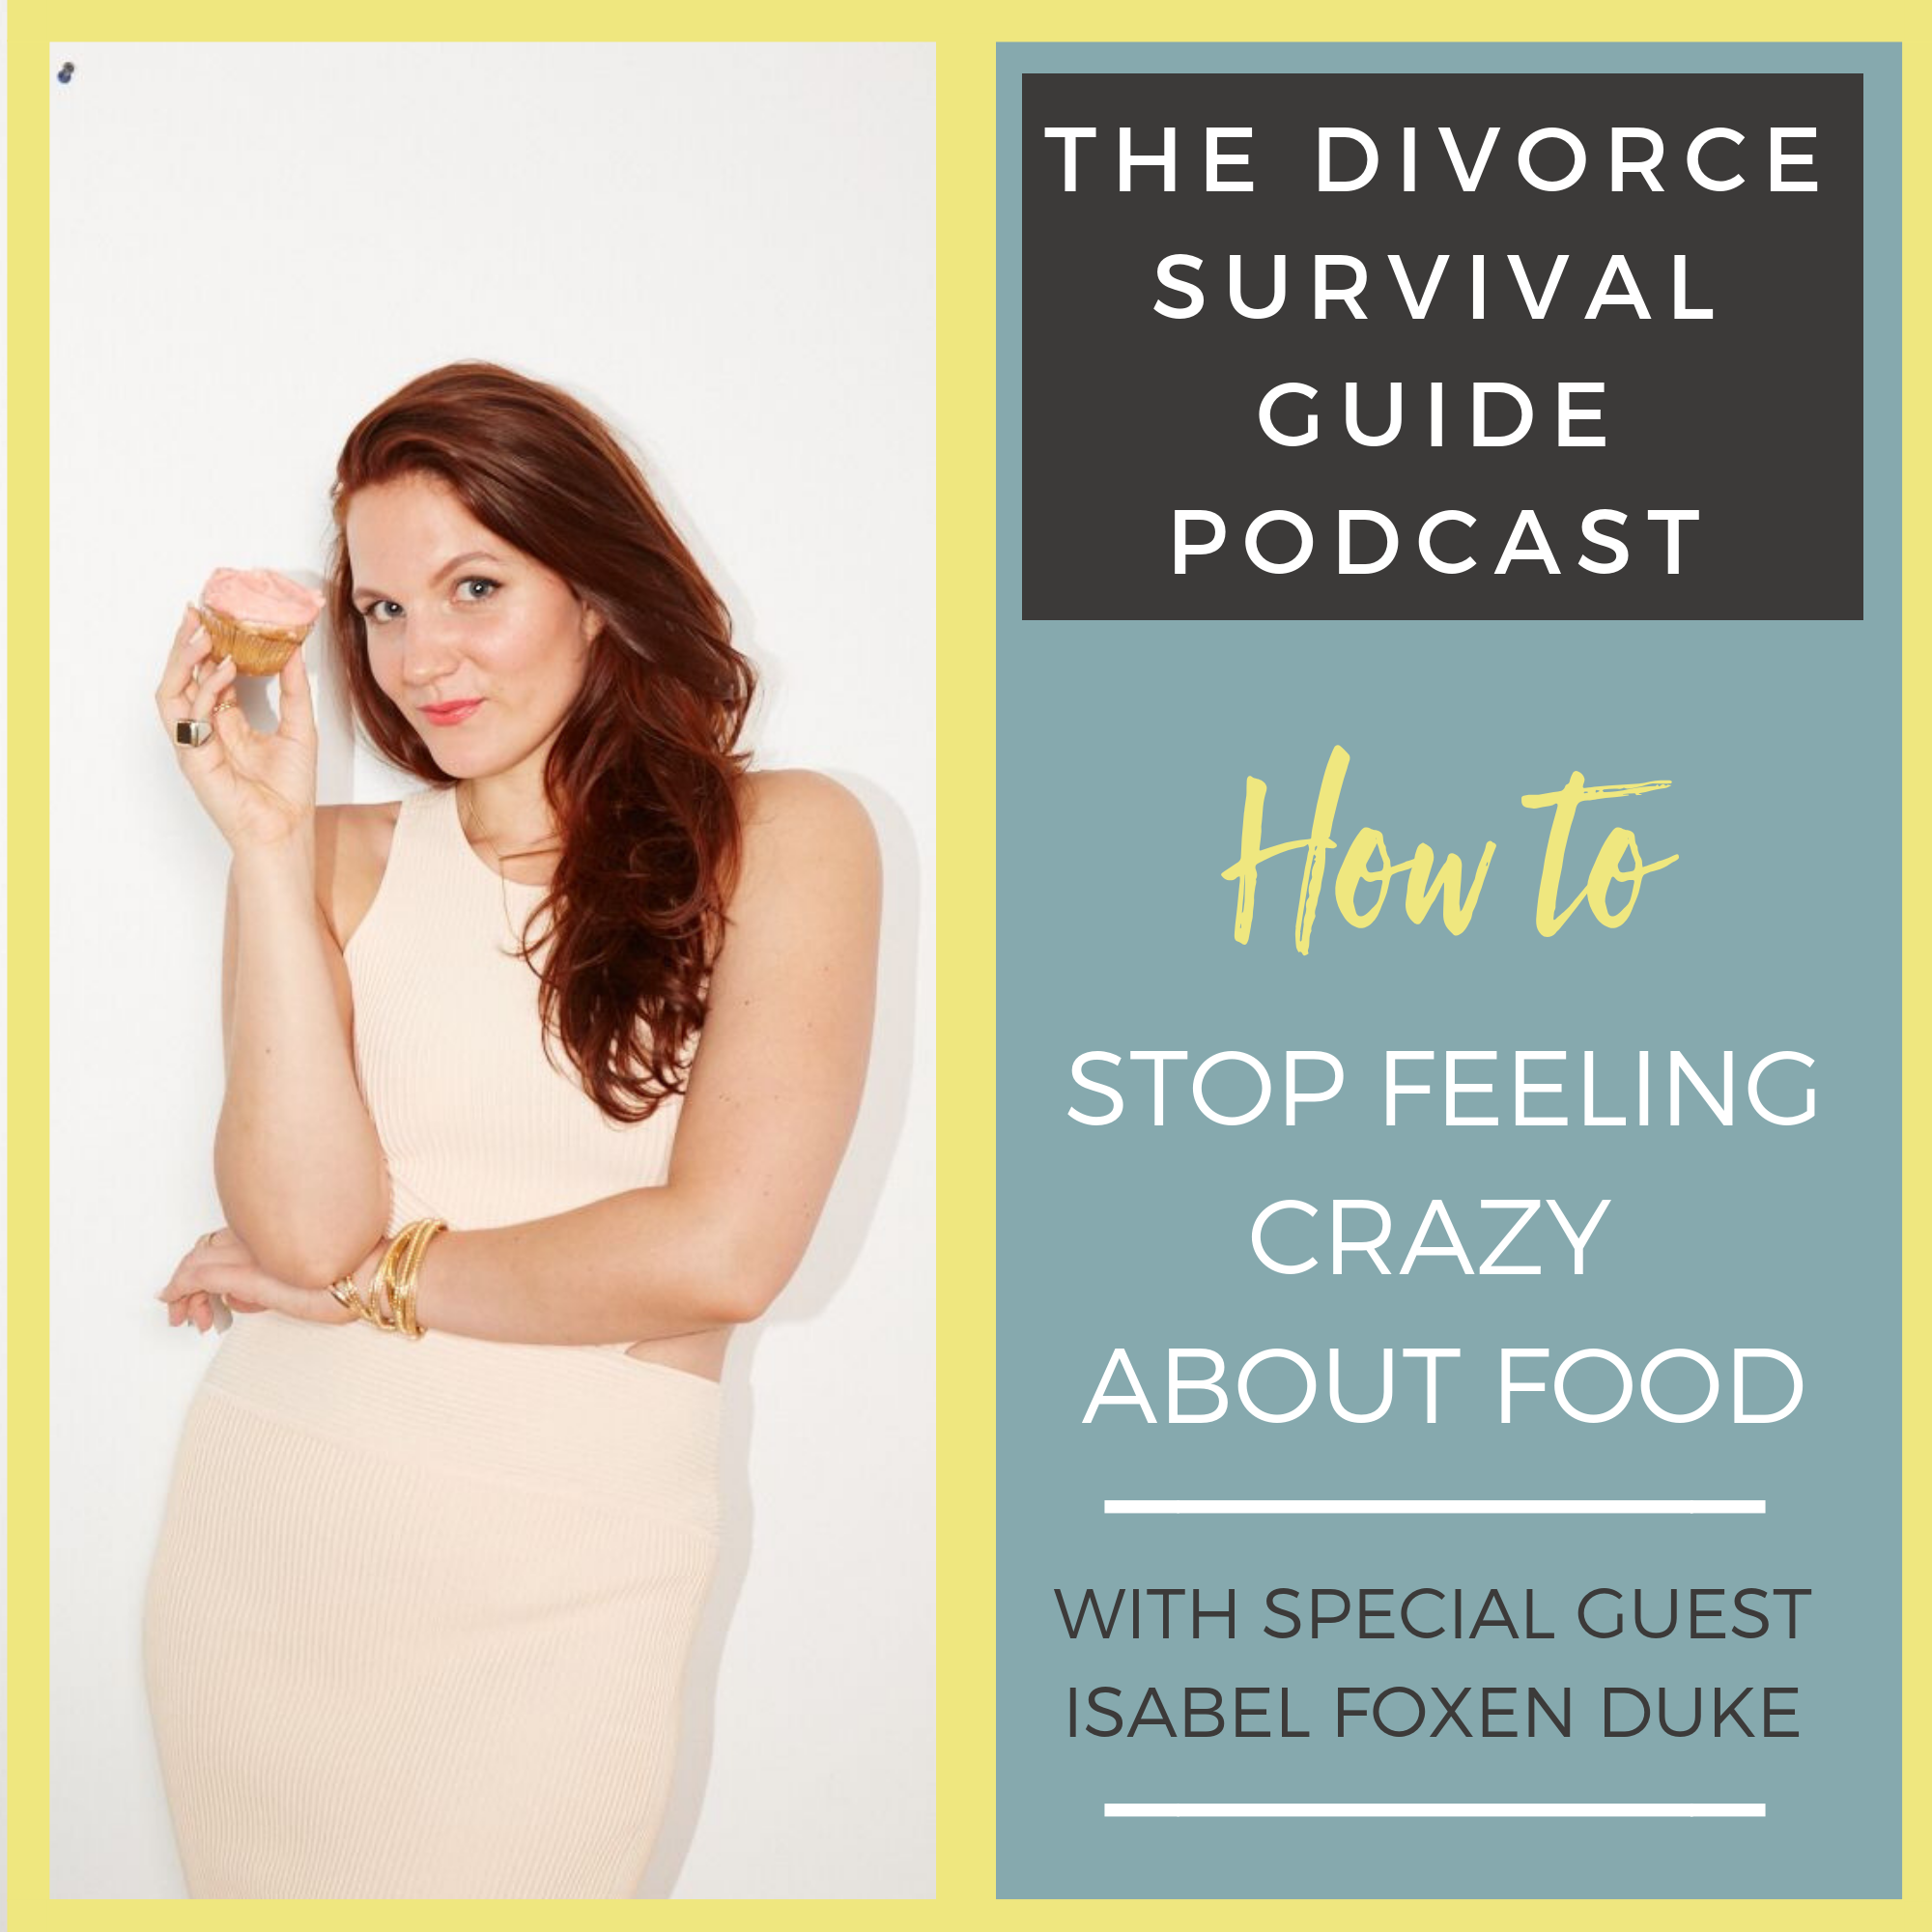 The Divorce Survival Guide Podcast - How to Stop Feeling Crazy About Food with Isabel Foxen Duke